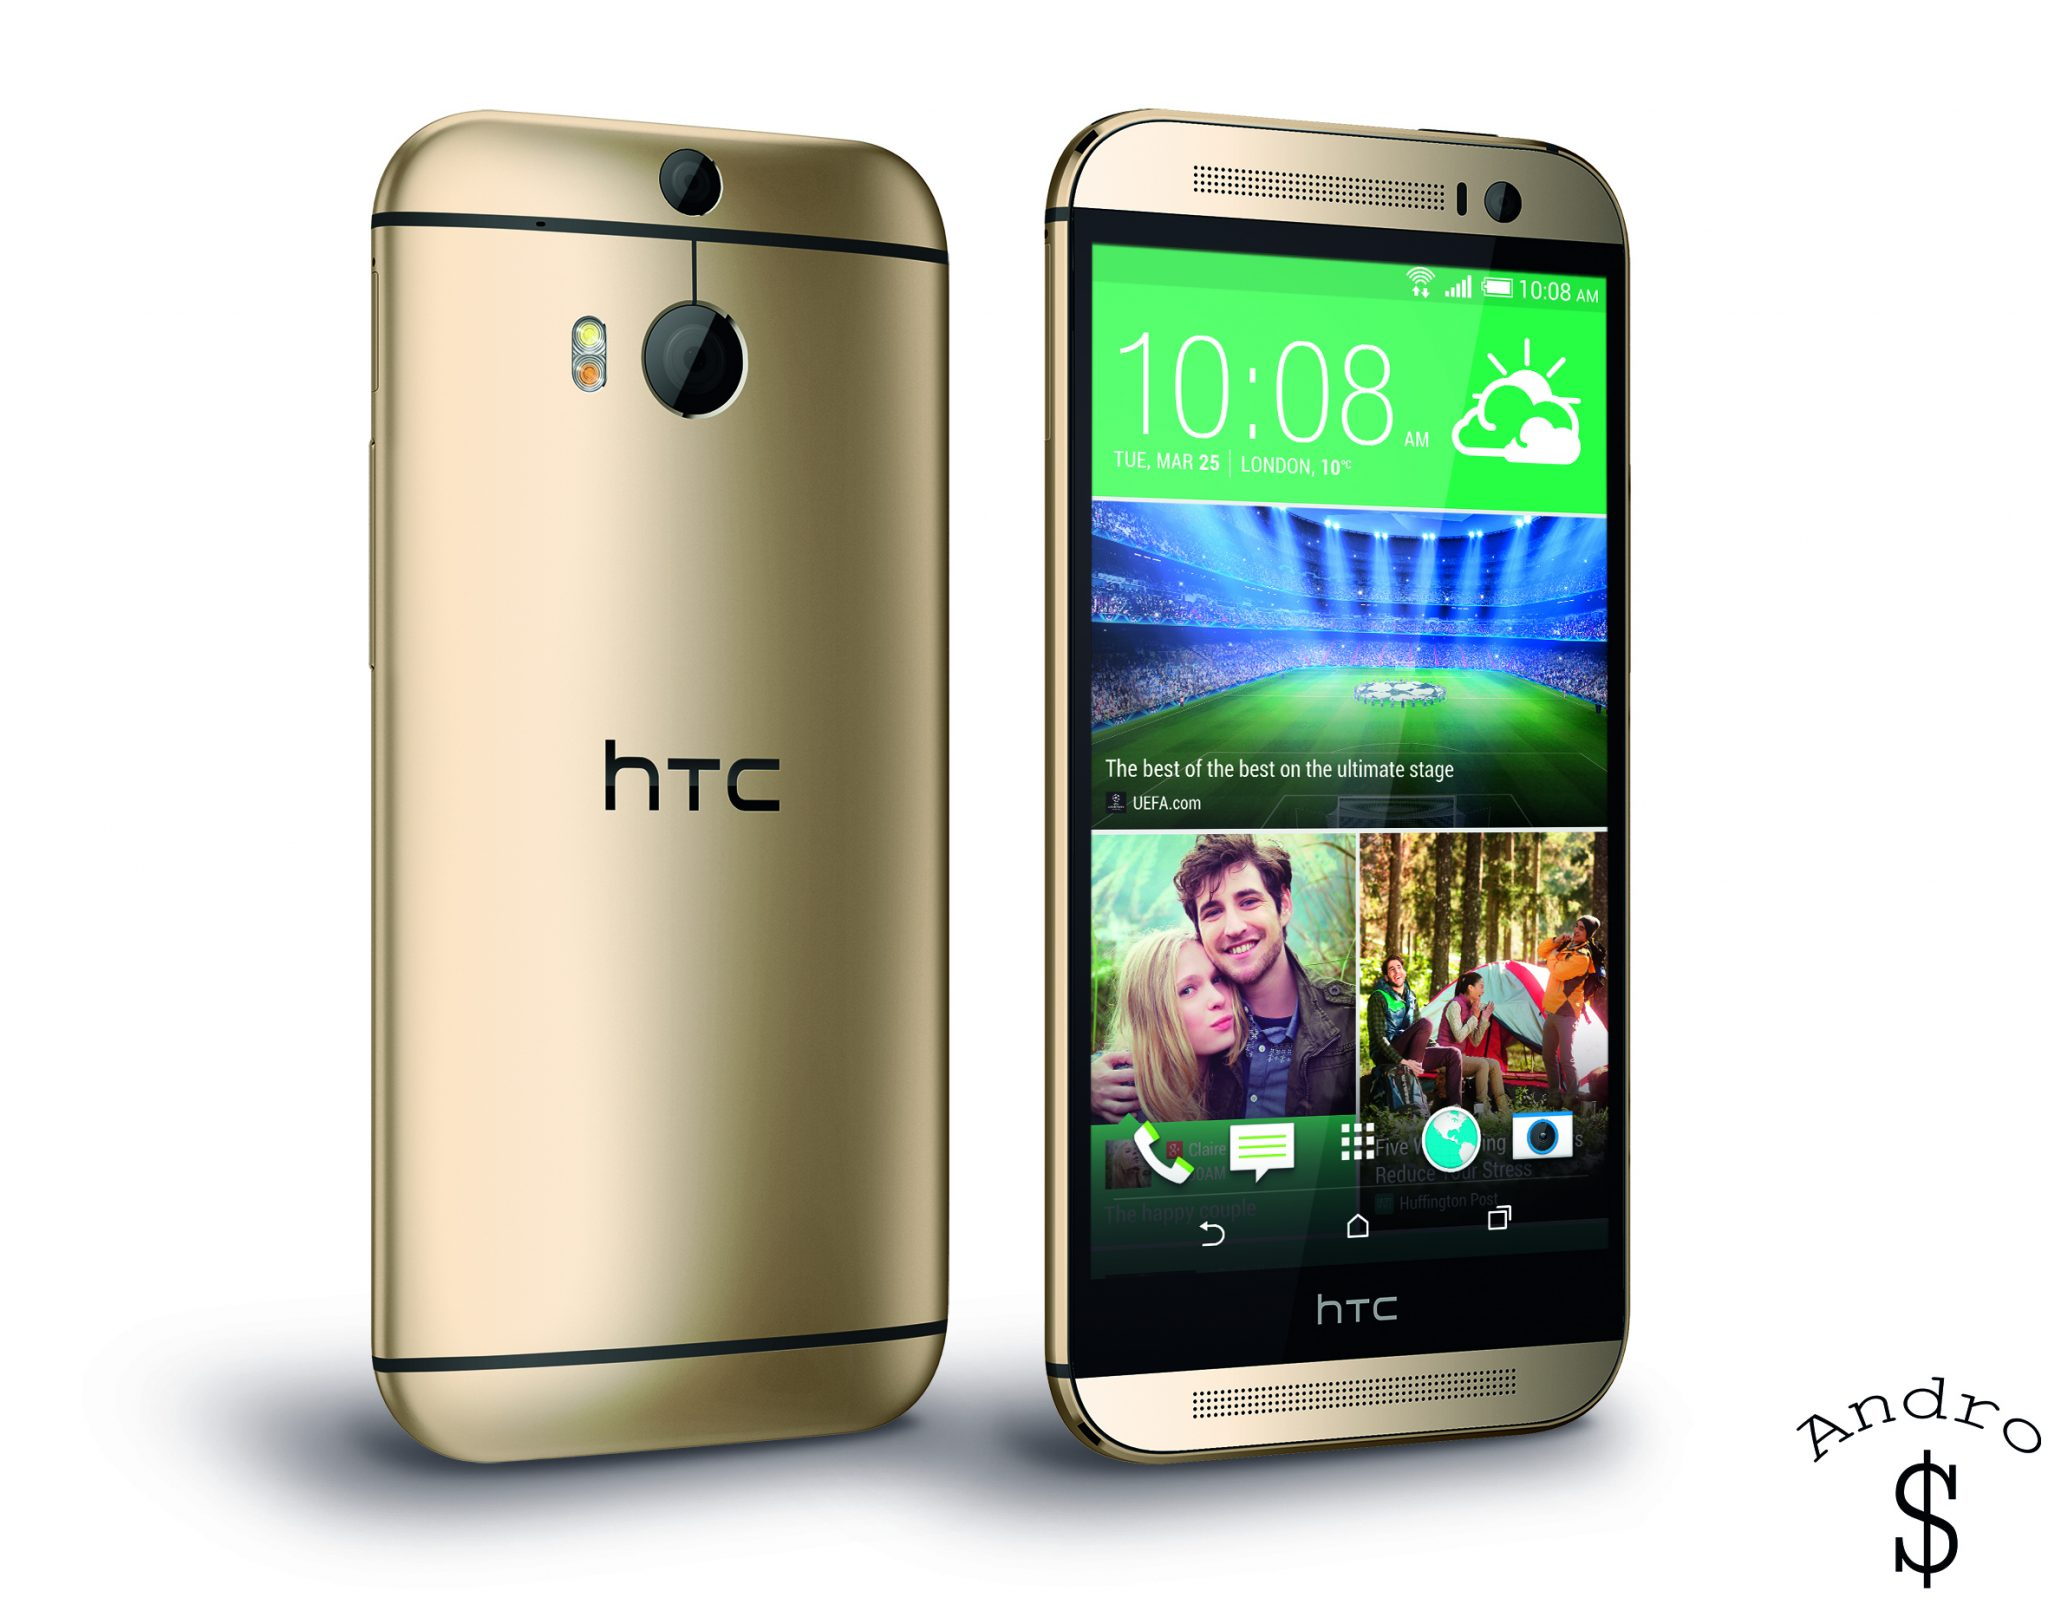 HTC One M8 PerRight Gold - BREAKING NEWS : HTC releases the HTC One 2014 (M8)